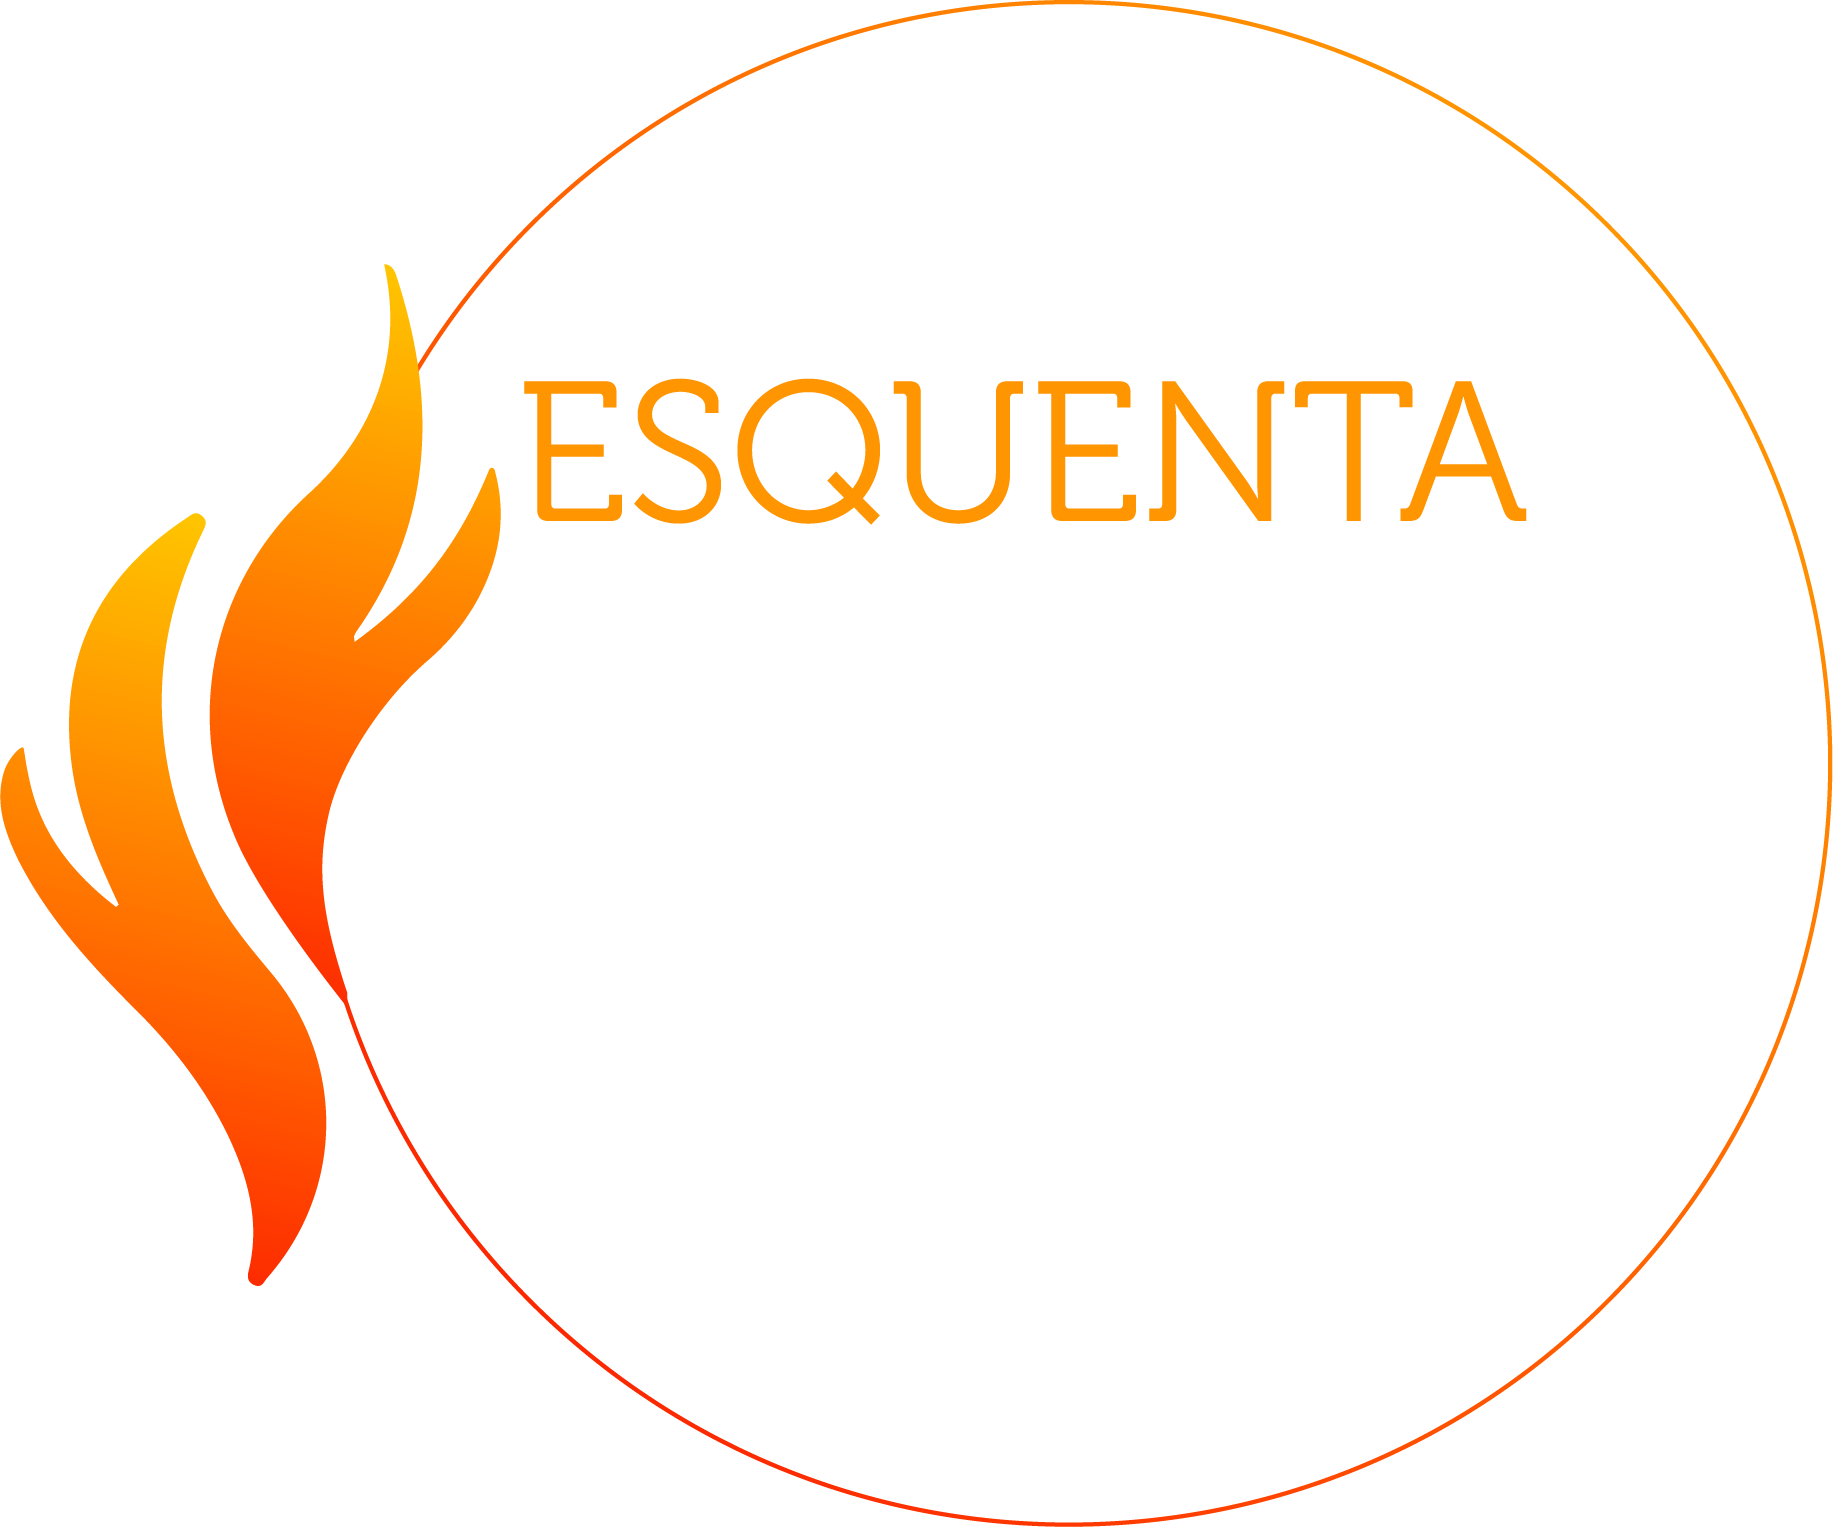 Esquenta Black Friday Girafa